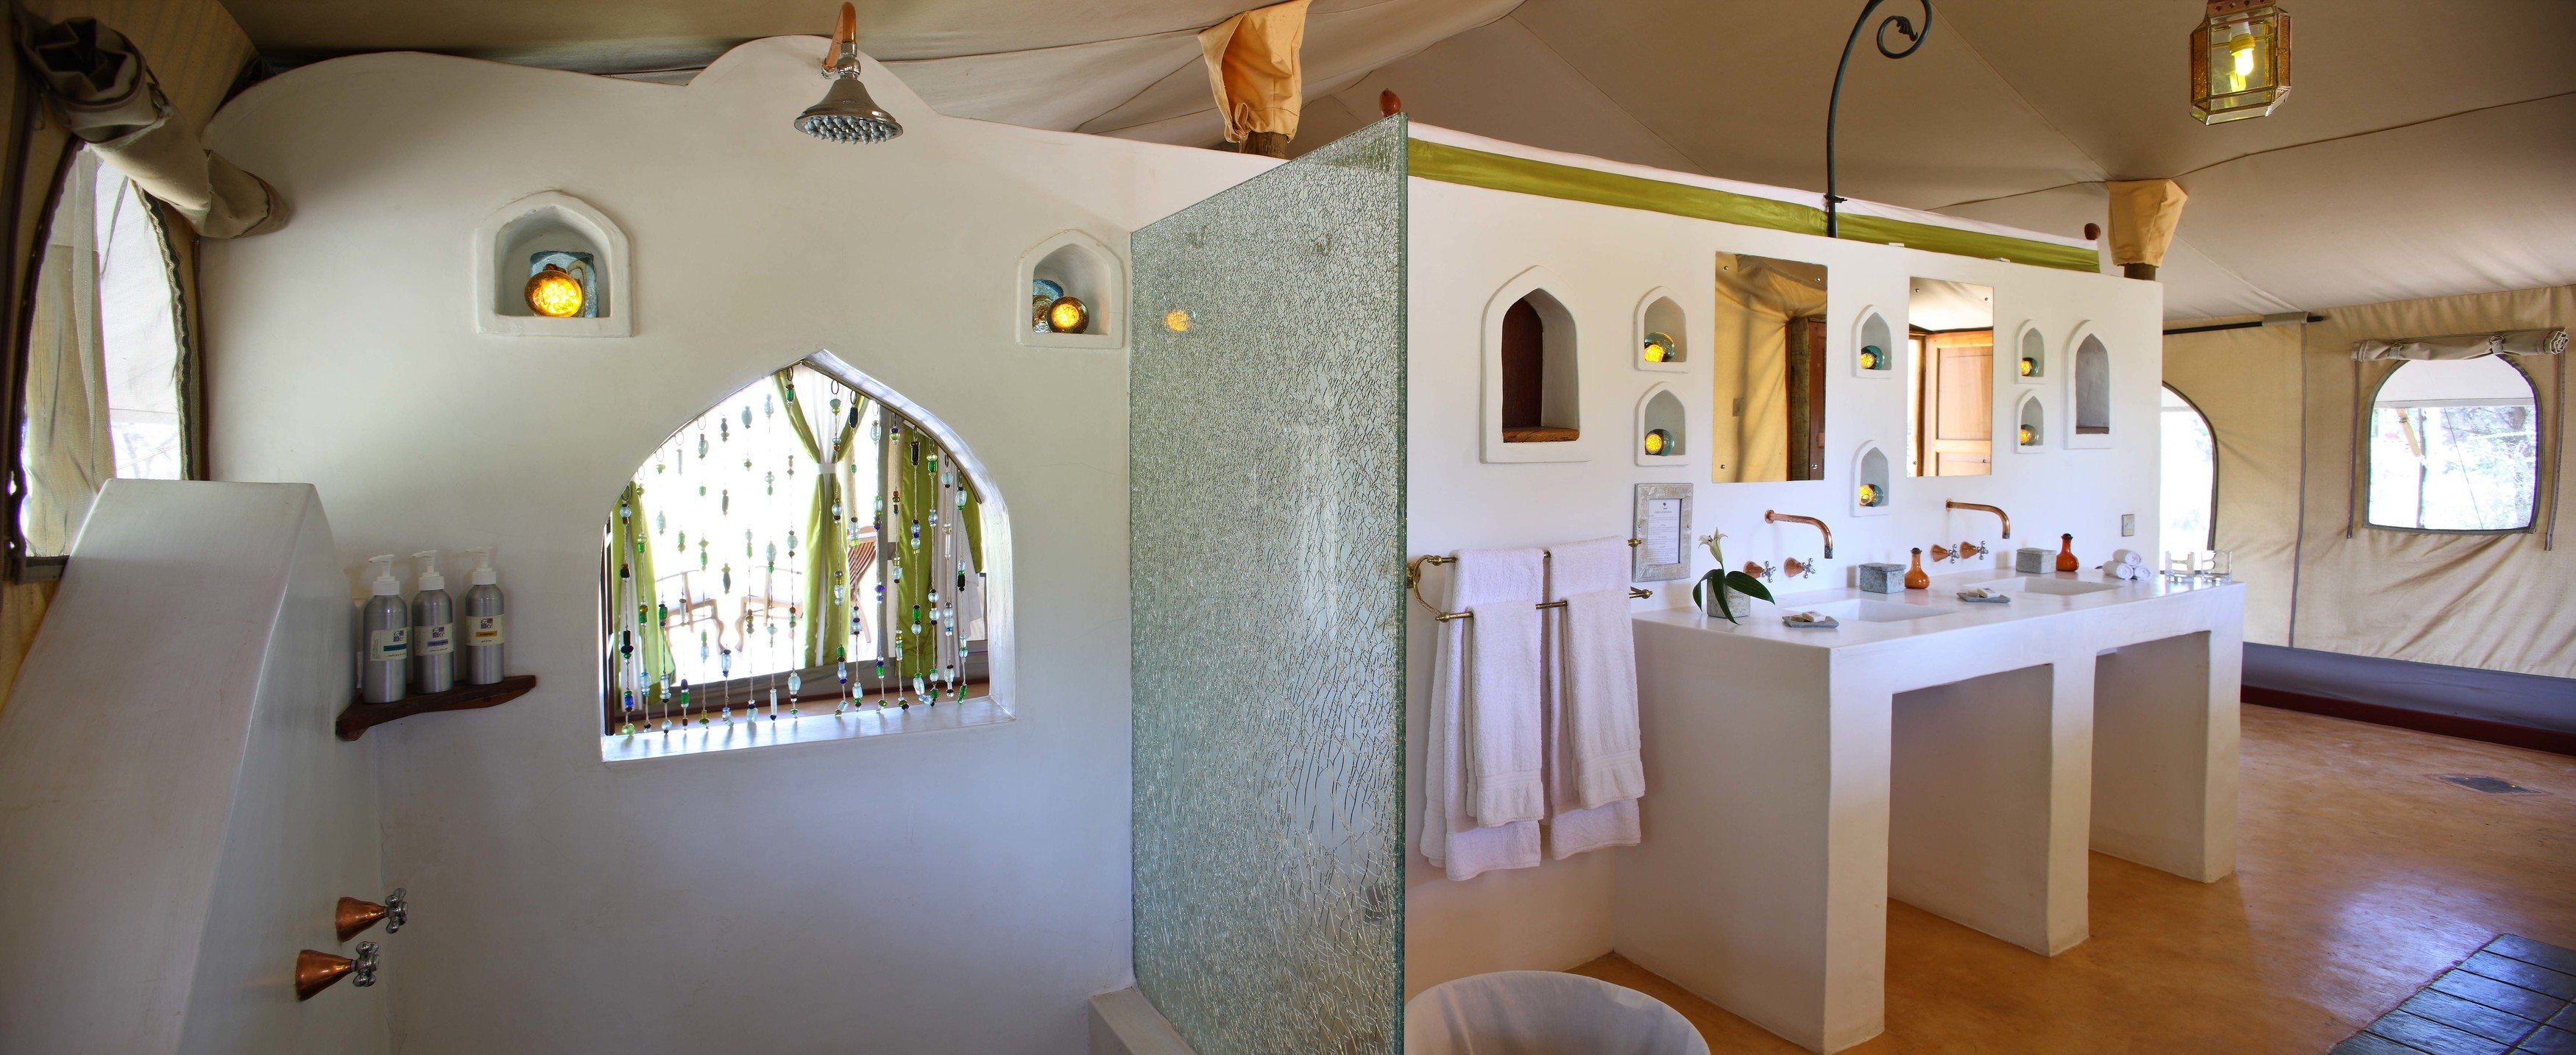 Joys camp journeys by design for Bathroom designs in kenya